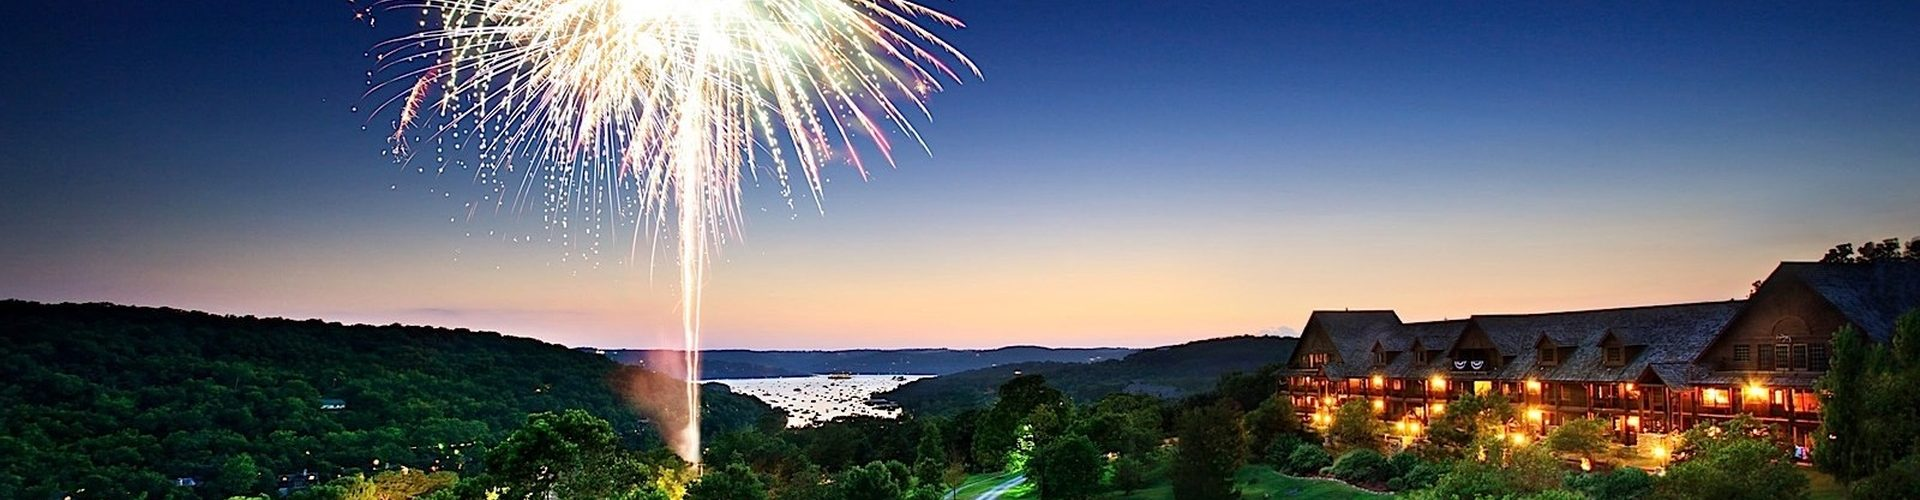 Celebrate 4th of July with Big Cedars' Fireworks Show!